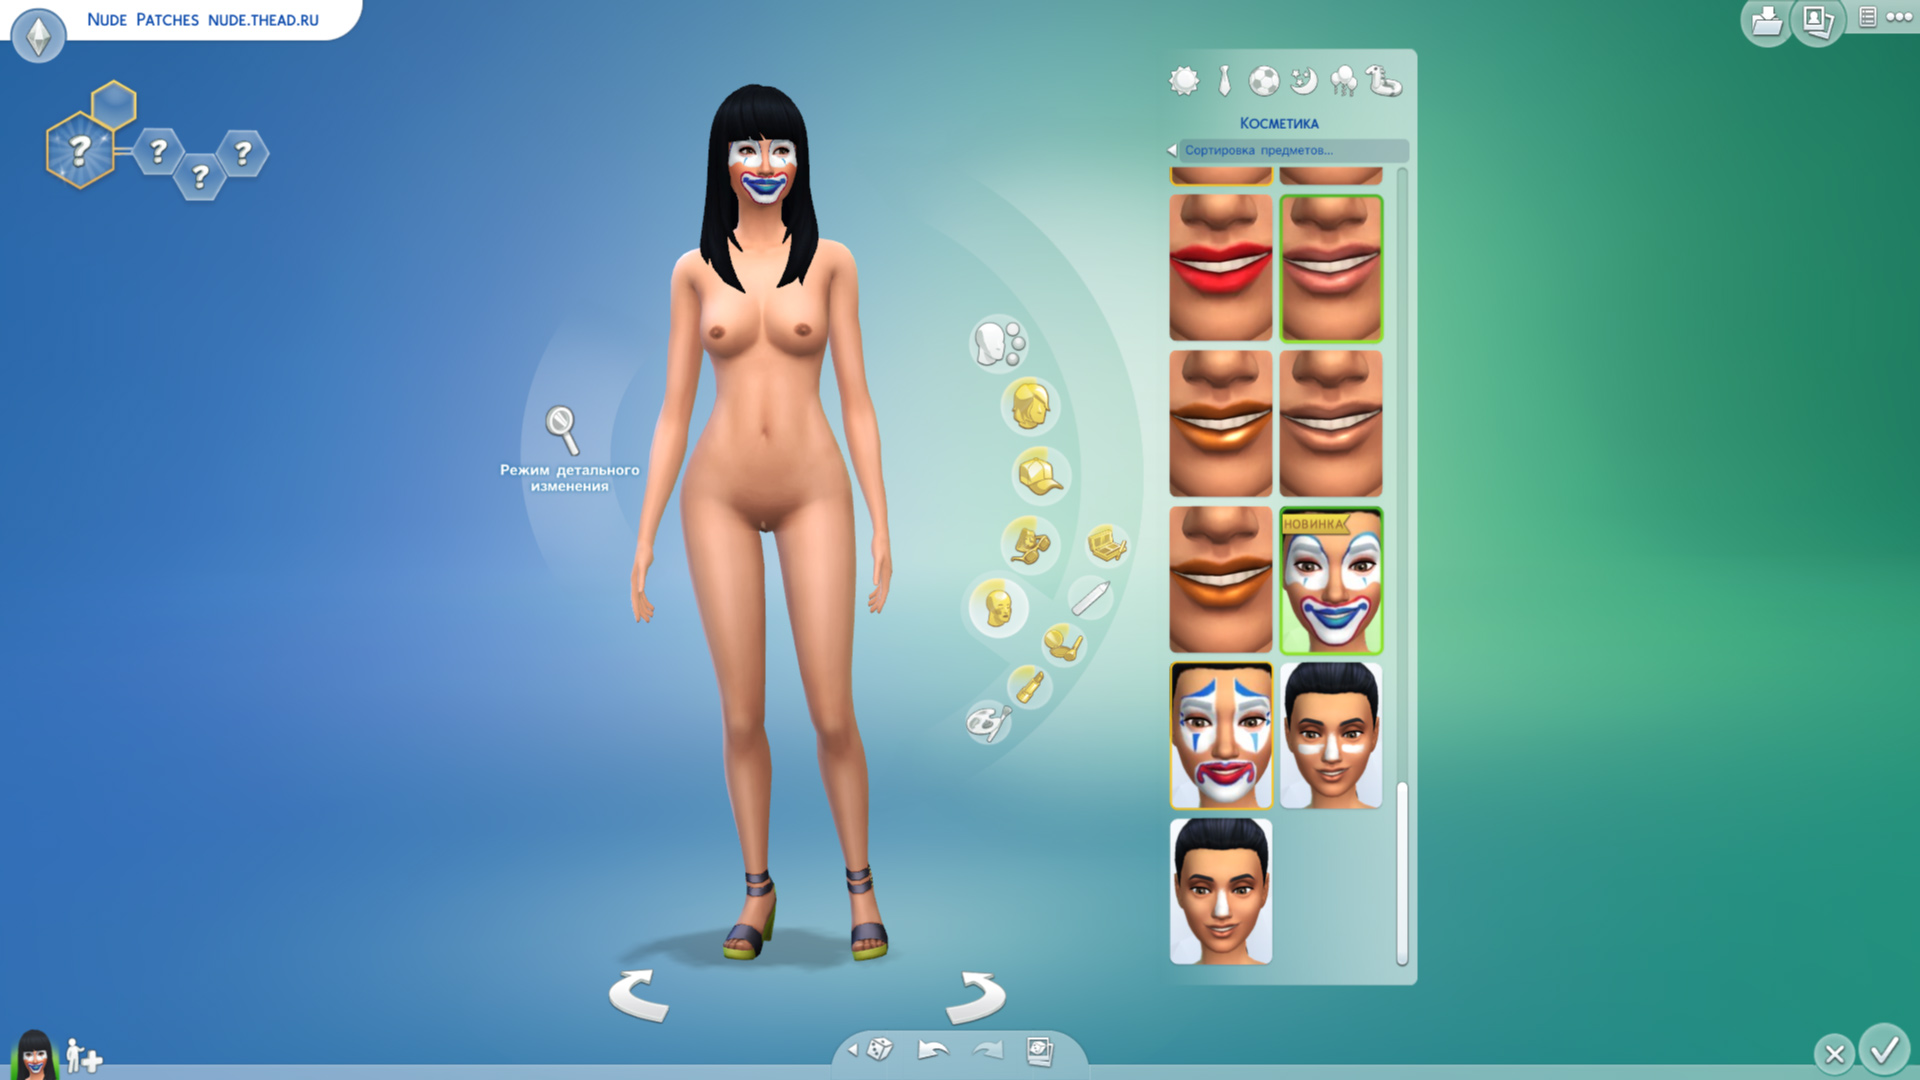 Nude mod do the sims 4 anime movie